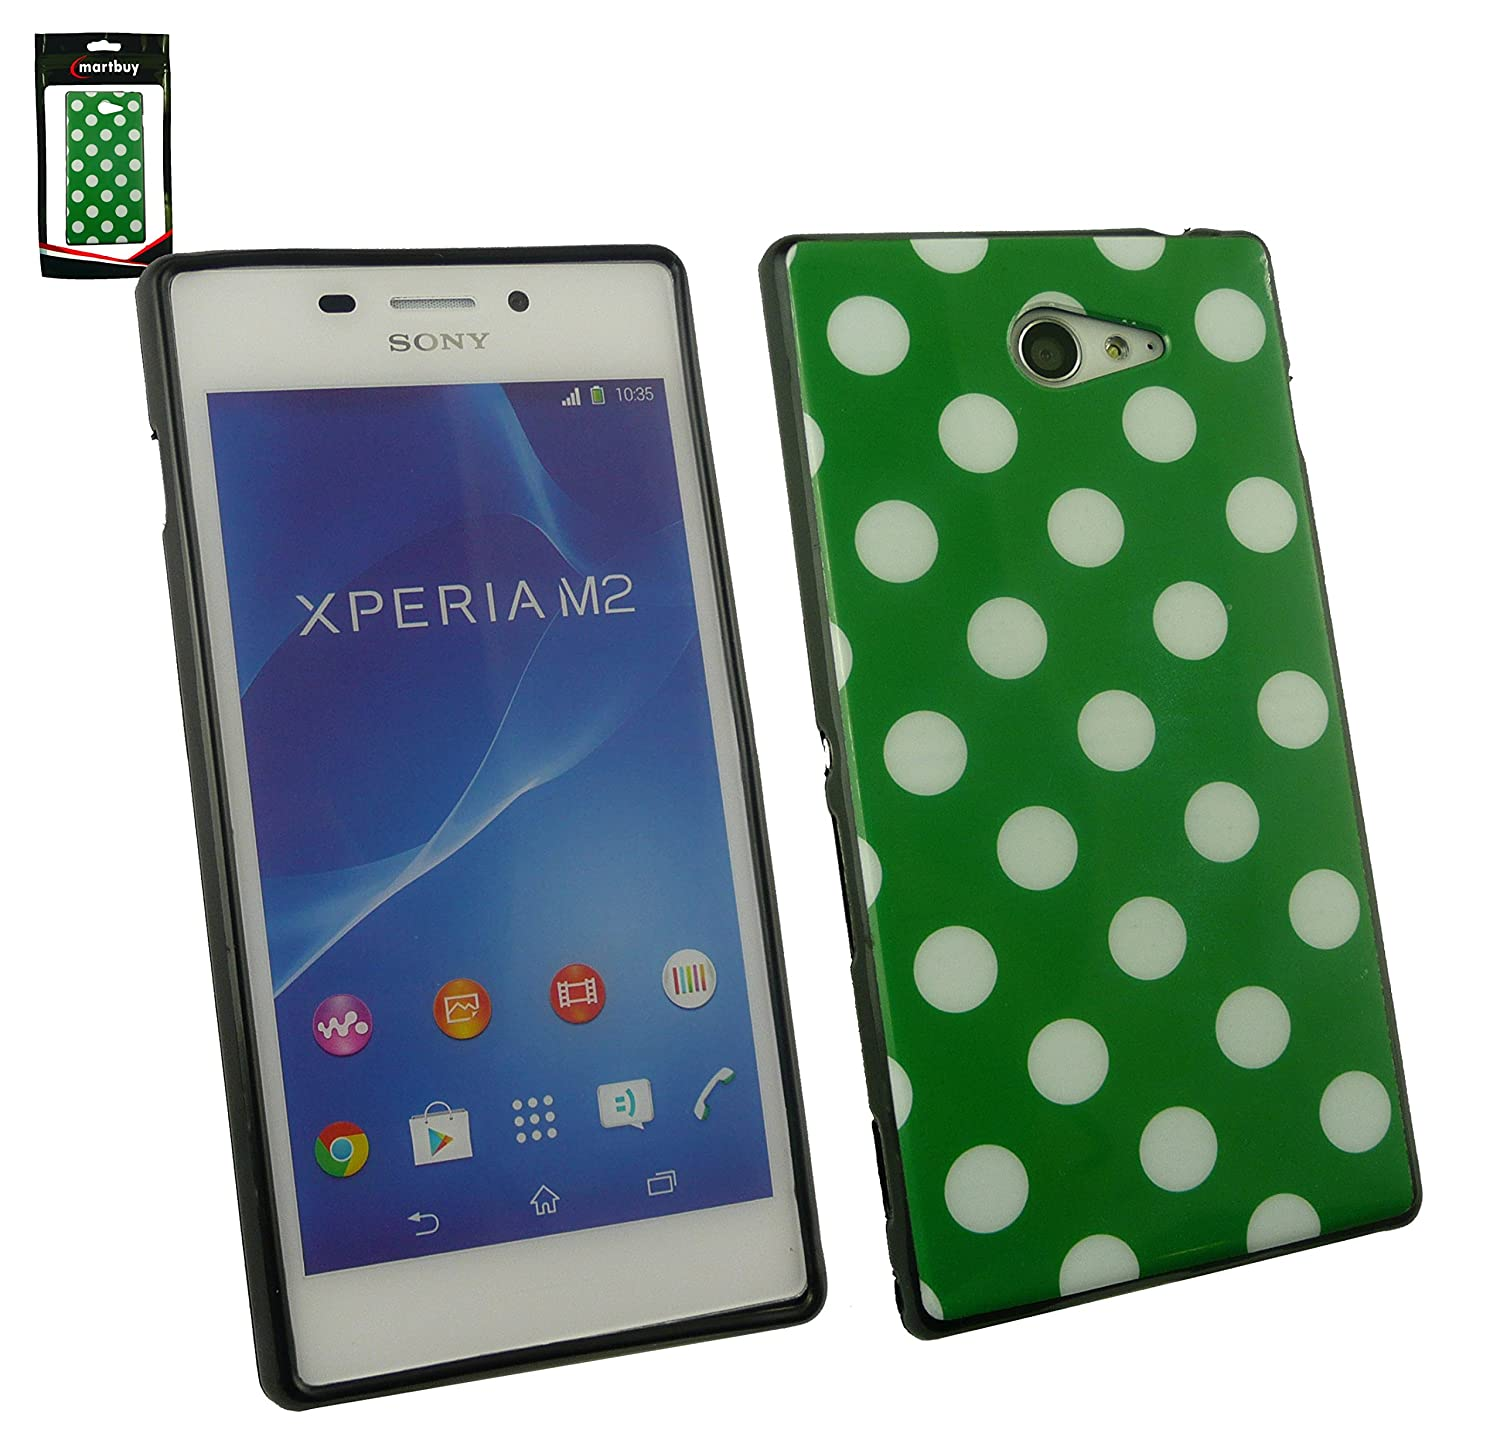 Emartbuy Sony Xperia M2 Dual Polka Dots Gel Skin Case Cover Green White Electronics